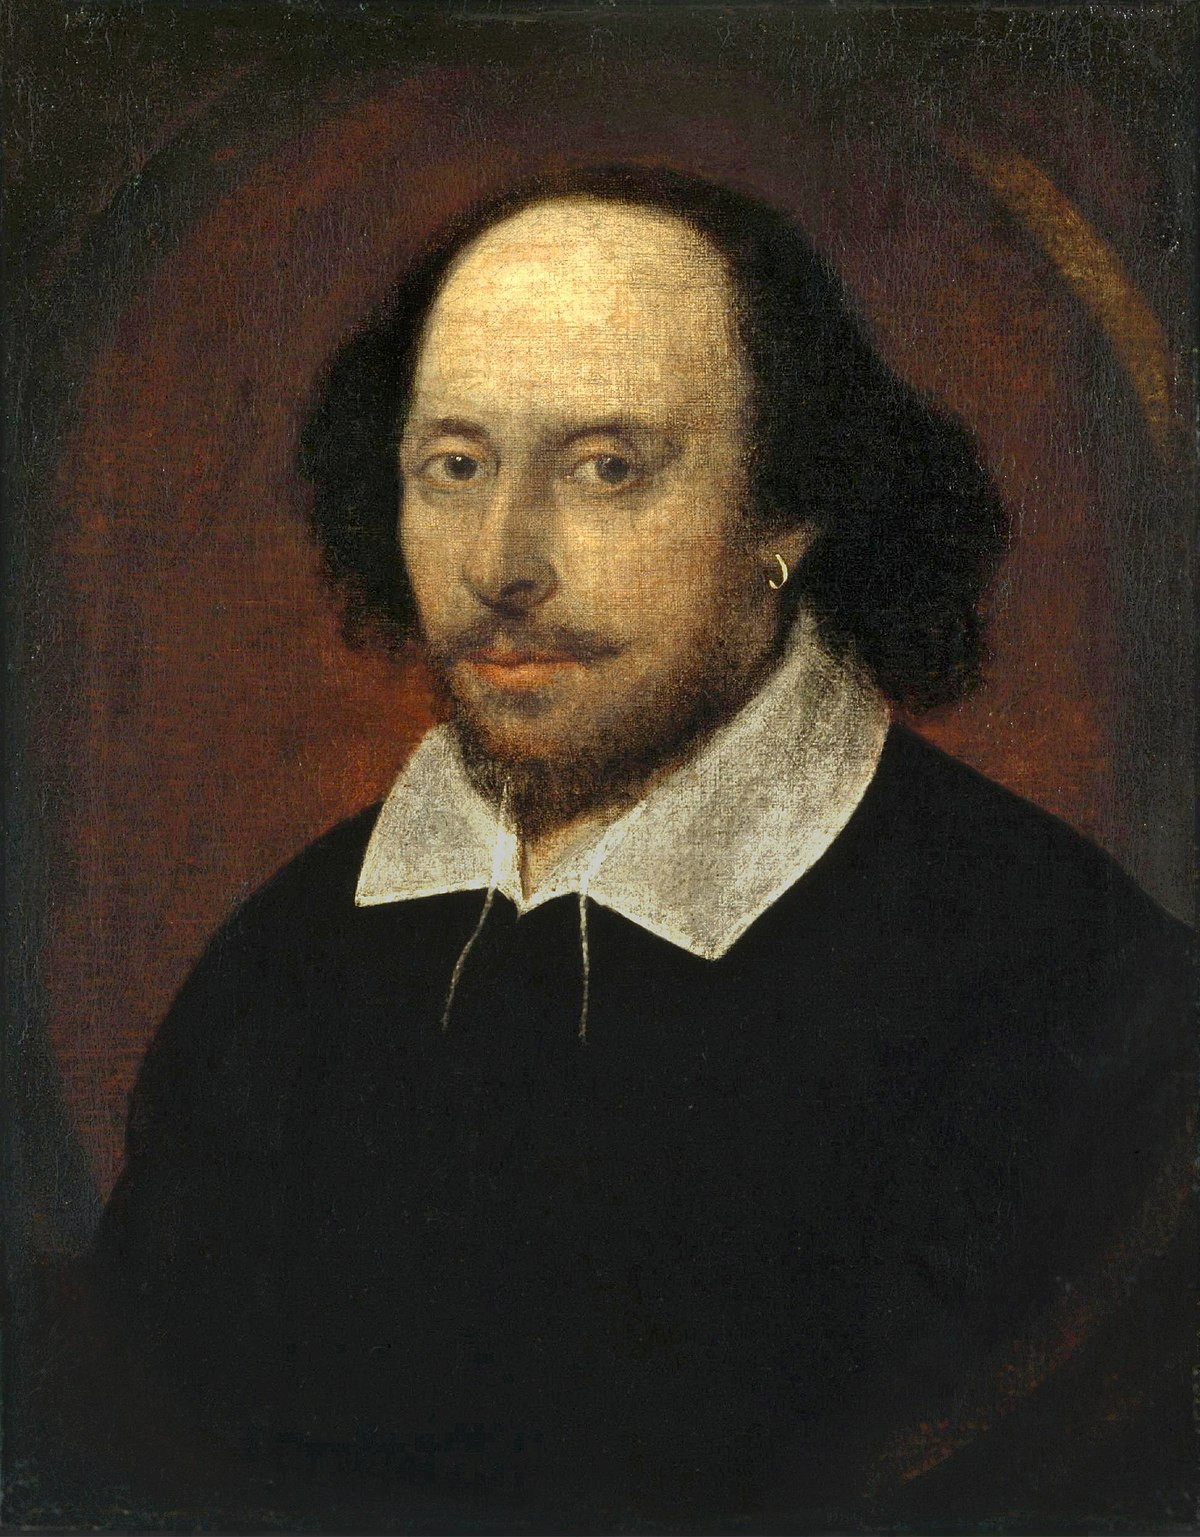 William Shakespeare Wikipedia La Enciclopedia Libre